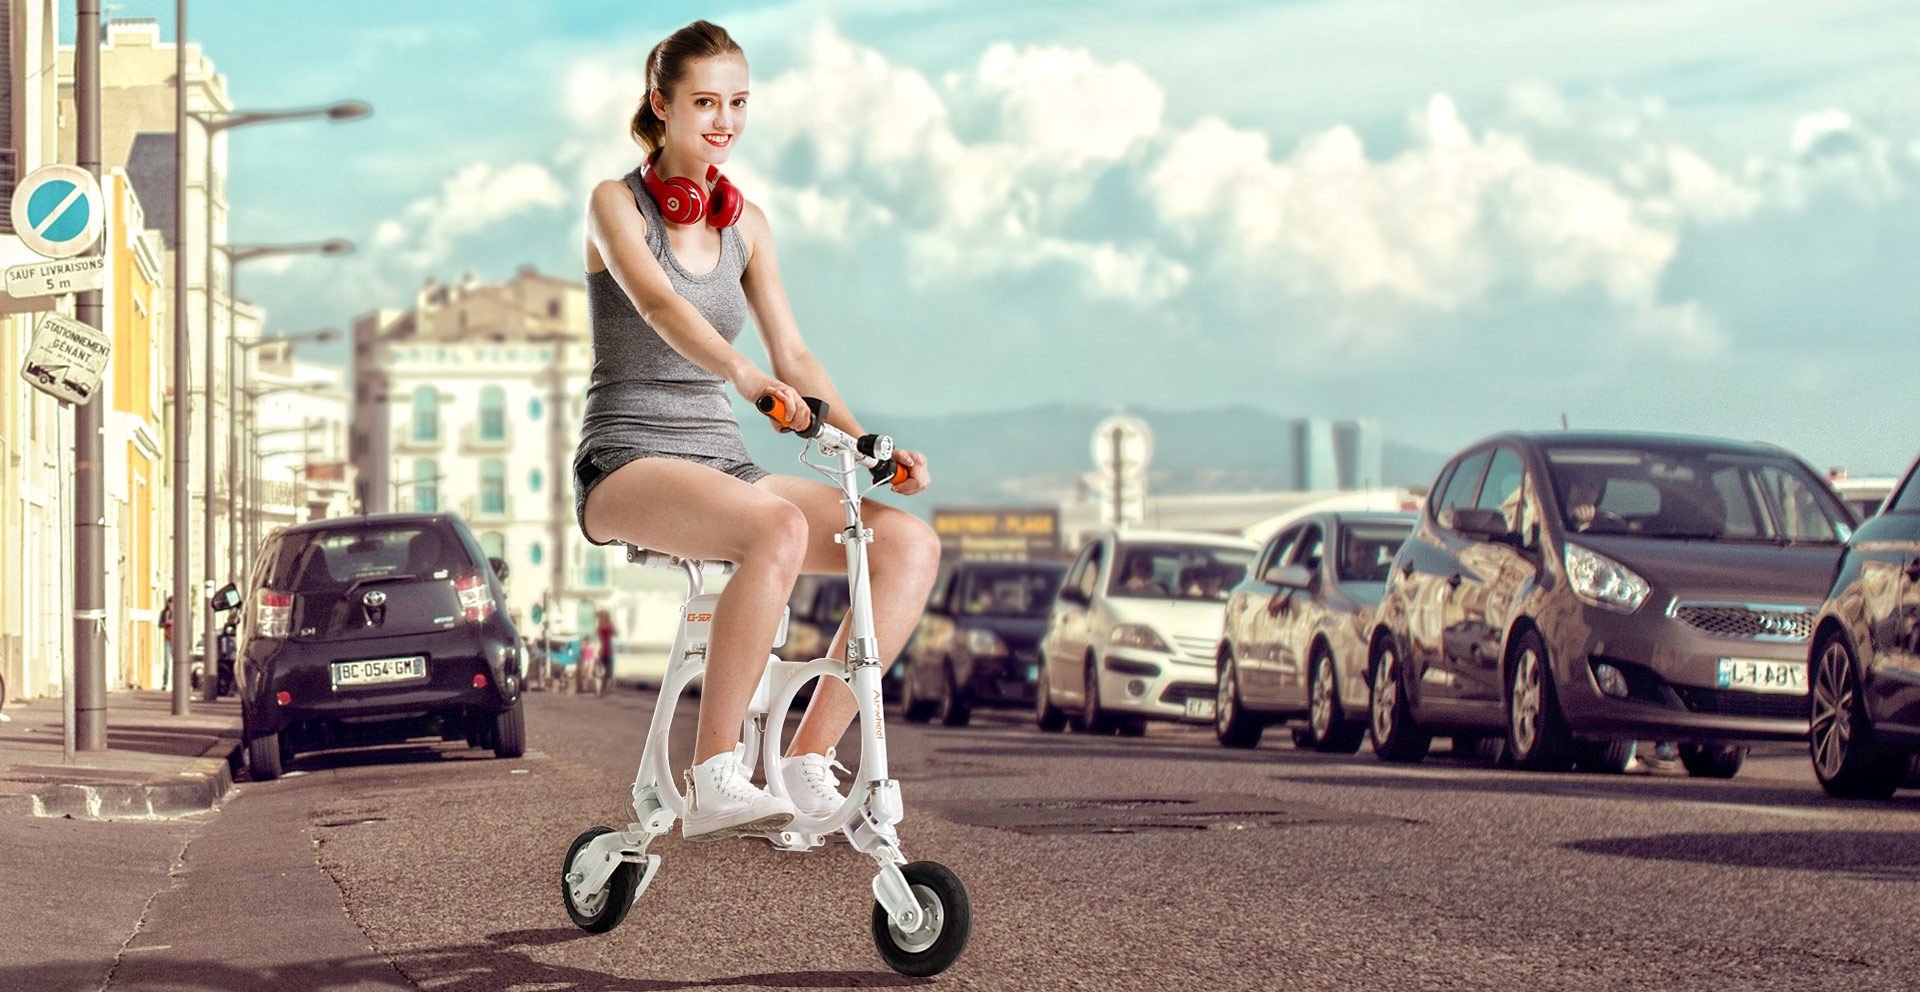 Airwheel E3 backpack electric bike